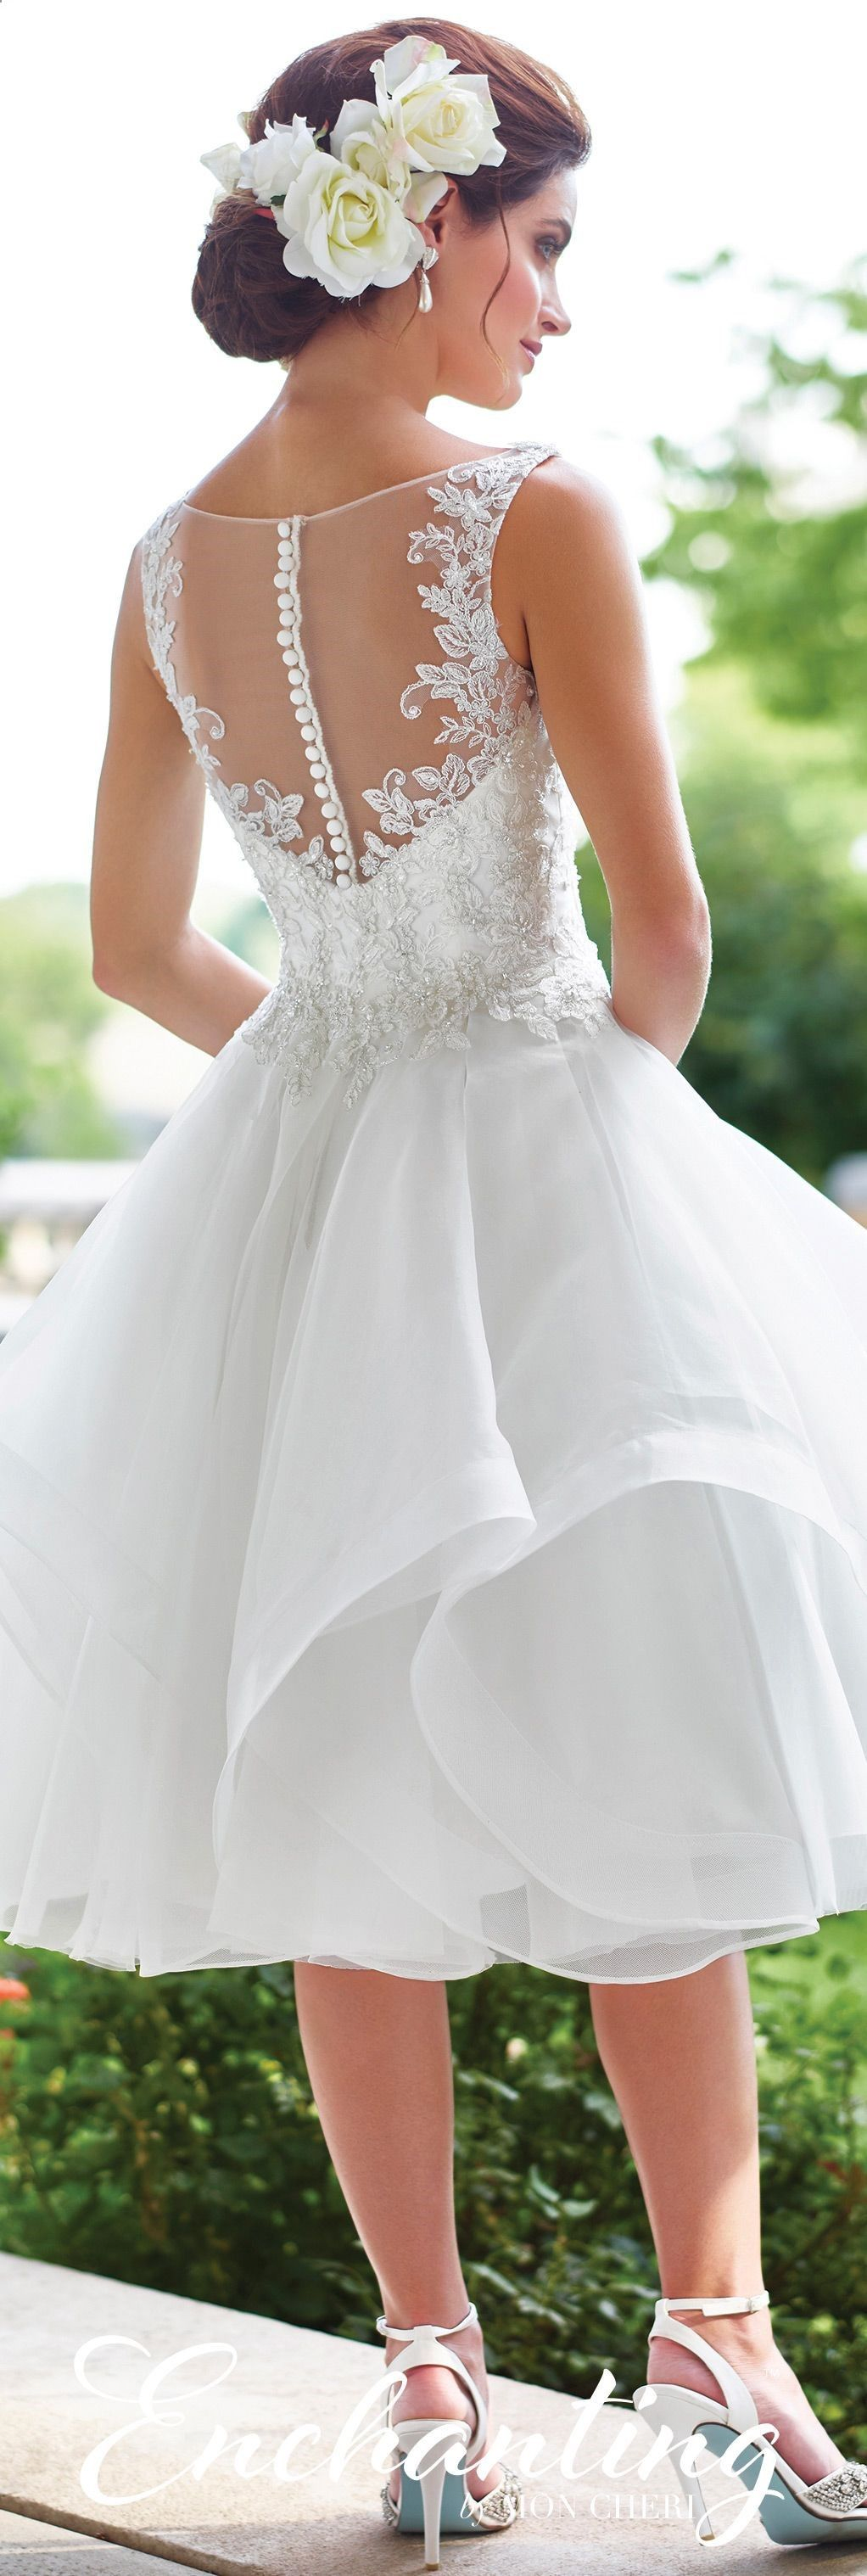 20 Amazing Short and Knee Length Wedding Dresses